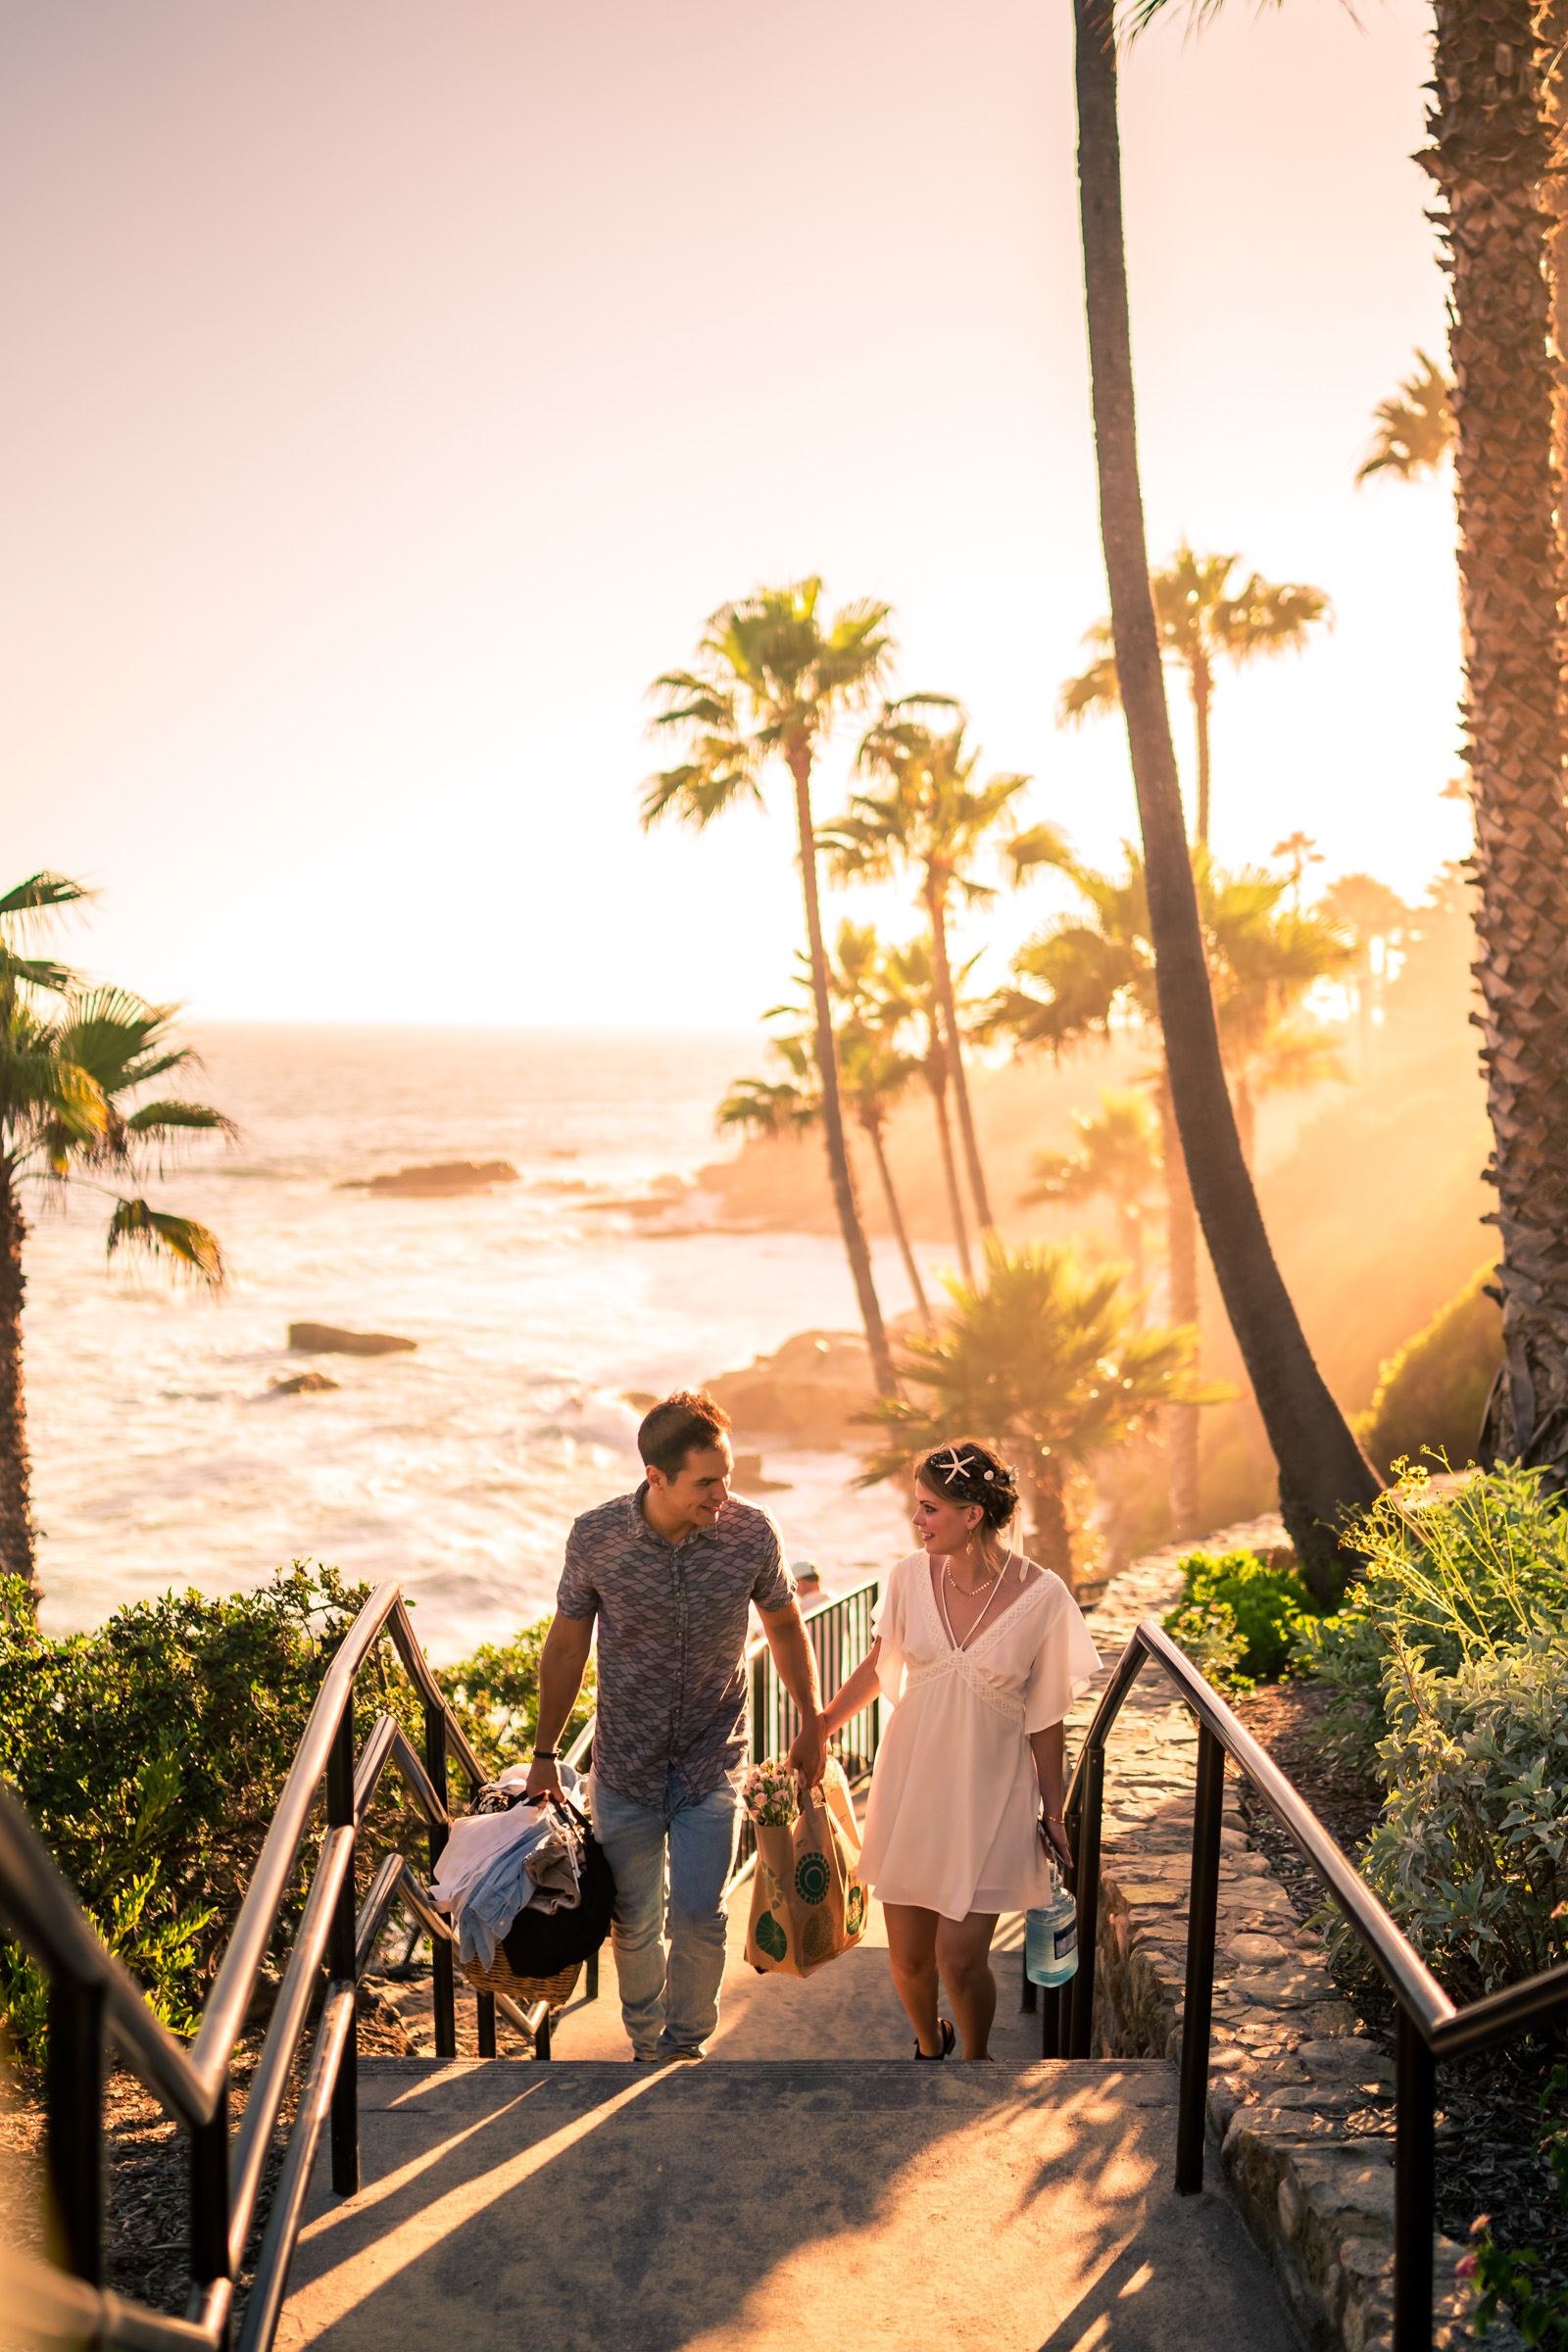 16__Bruno-Amanda-Laguna-beach-engagement_Joseph-Barber-Weddings_2897.jpg